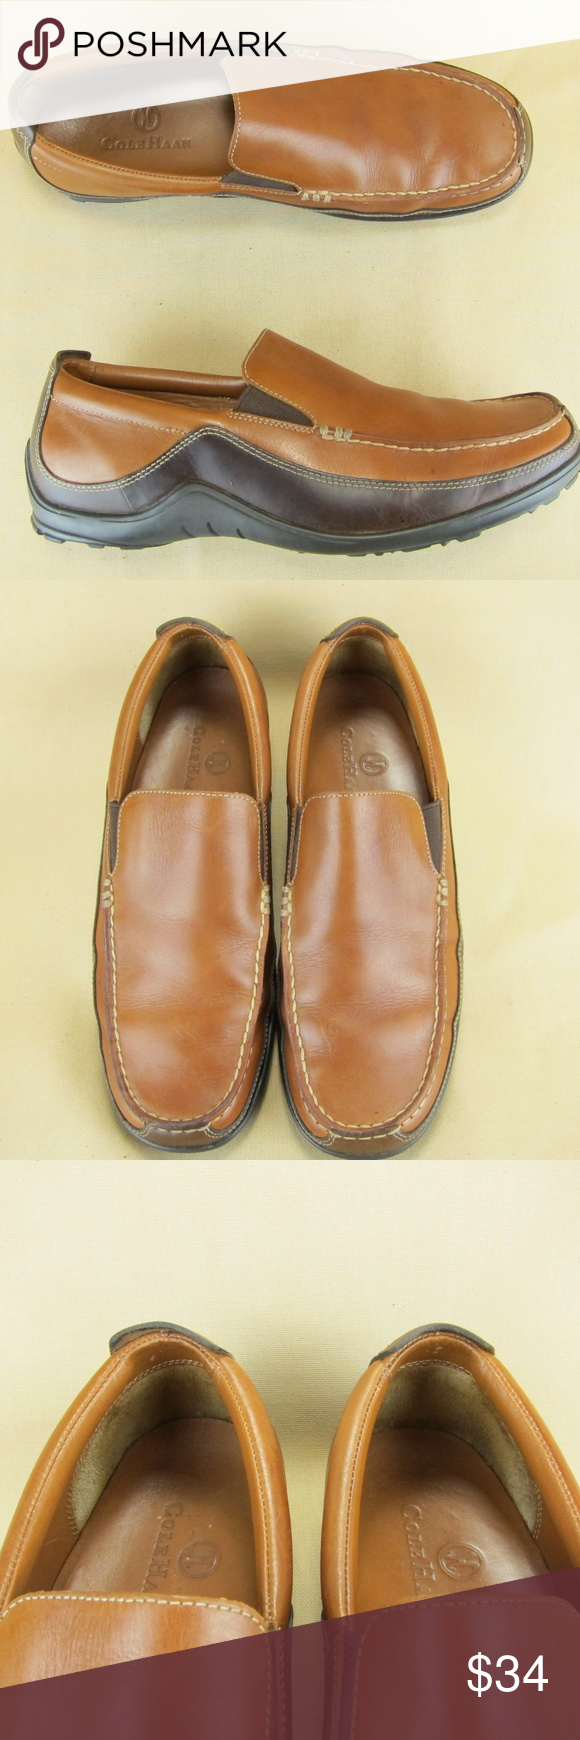 Cole Haan Driving Loafer Apron Toe